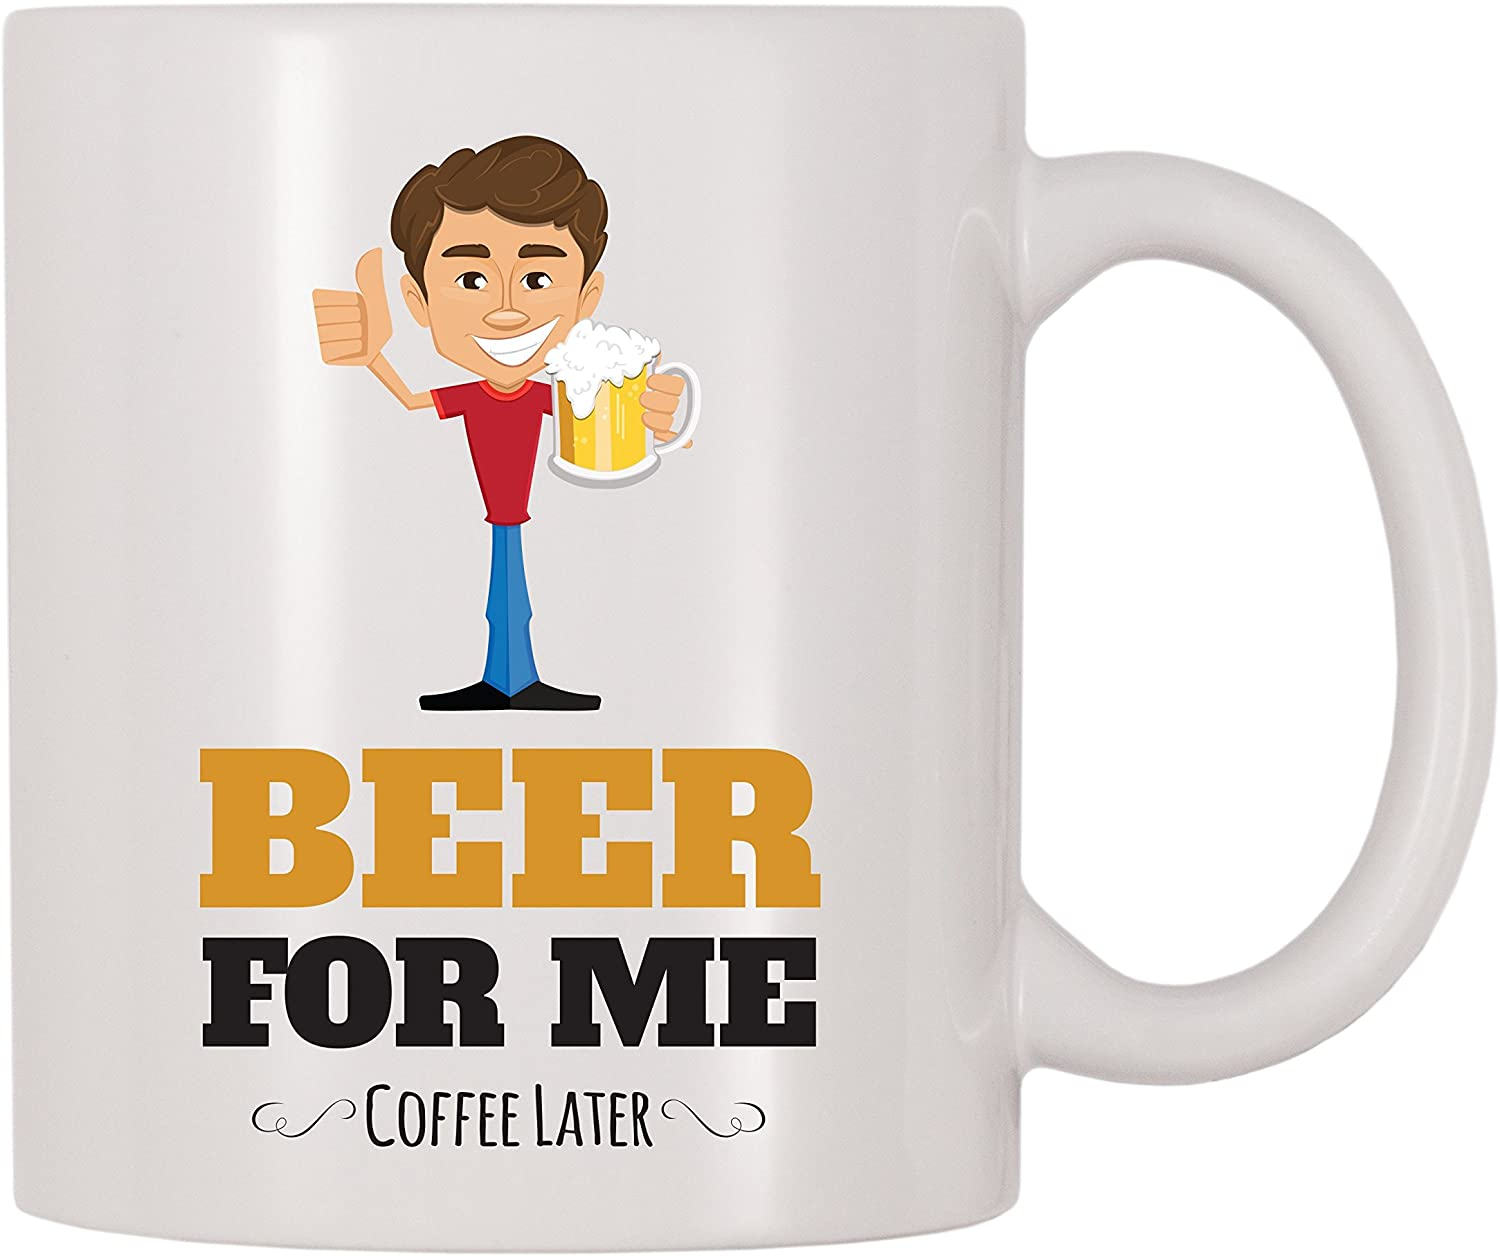 4 All Times Beer For Me Coffee Later Coffee Mug (11 oz)